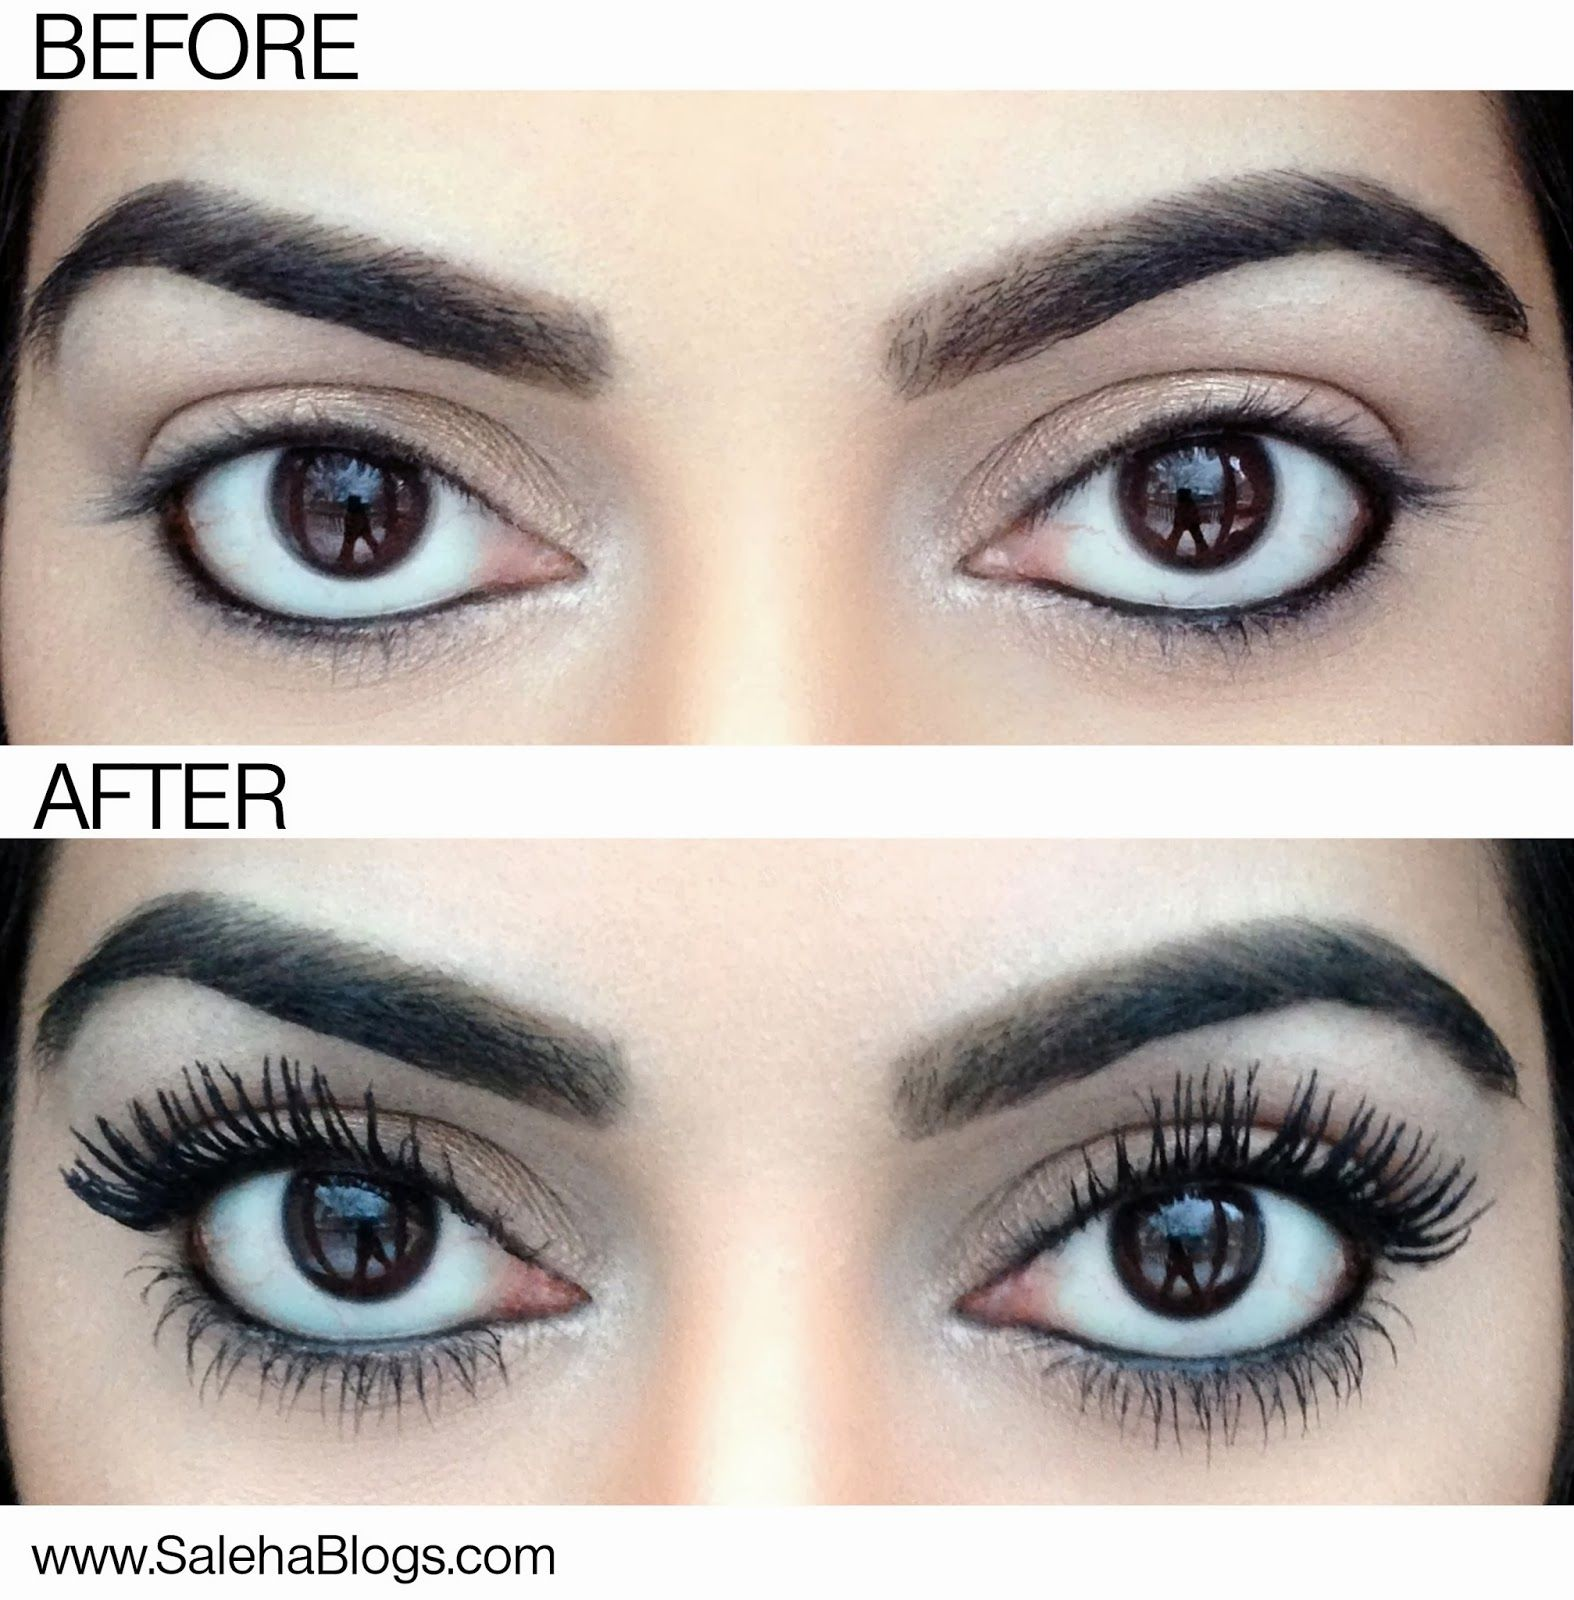 How to get super thick eyelashes amazing hair beauty that i diy falsies using a q tip coat your lashes with baby powder then apply mascara and repeat the baby powder clings to the lashes making them appear longer ccuart Image collections